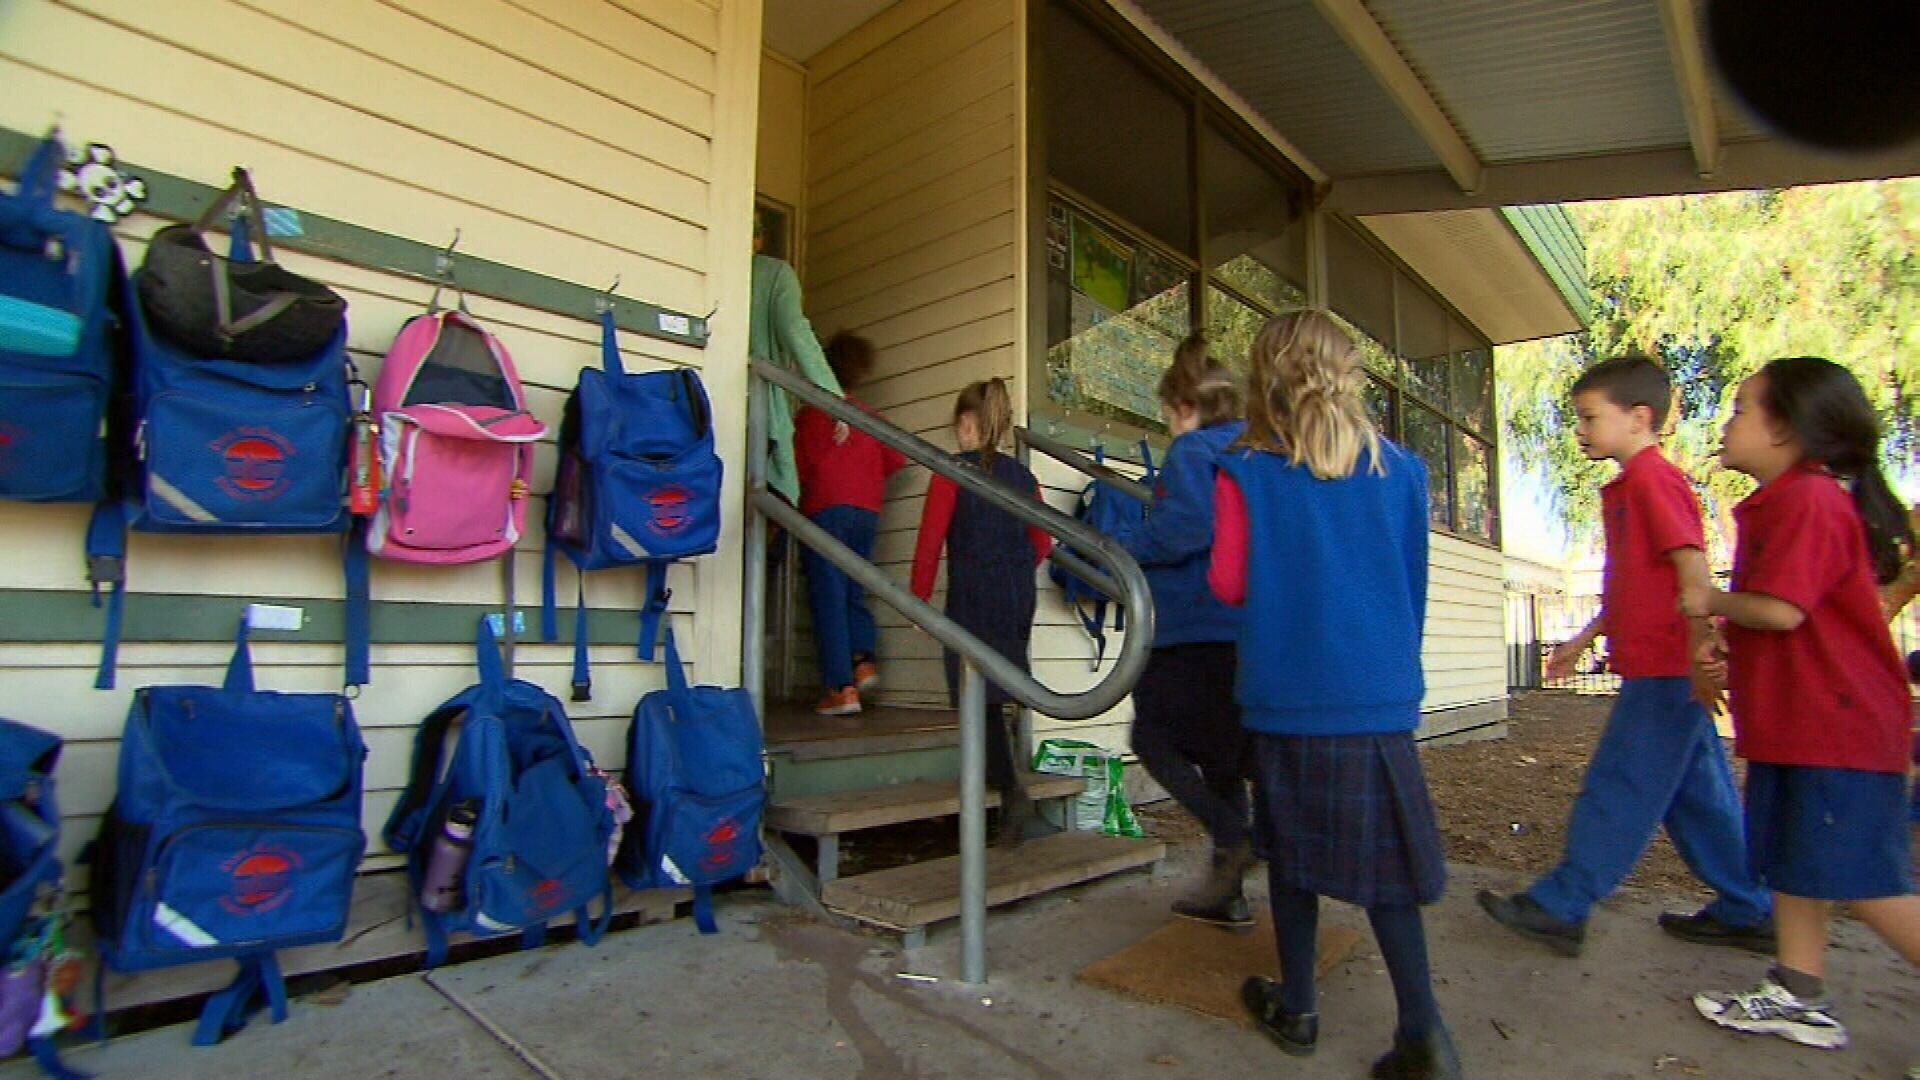 SA schools face uniform discrimination complaints